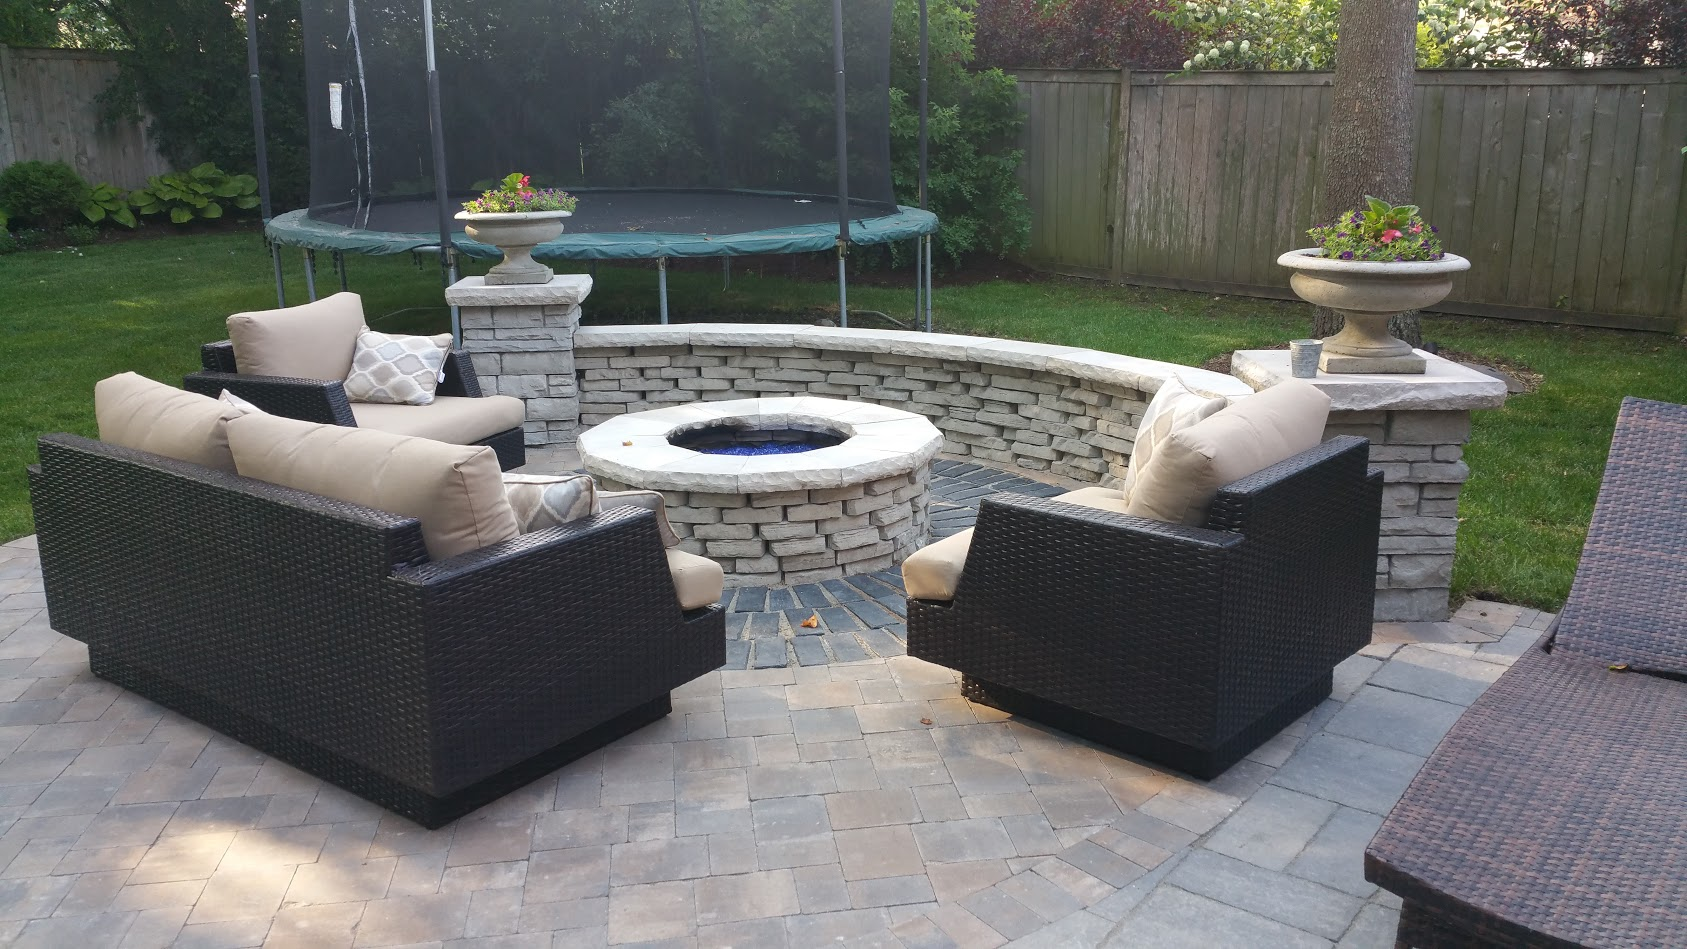 Patio designs and patio pavers in Nortbrook, IL